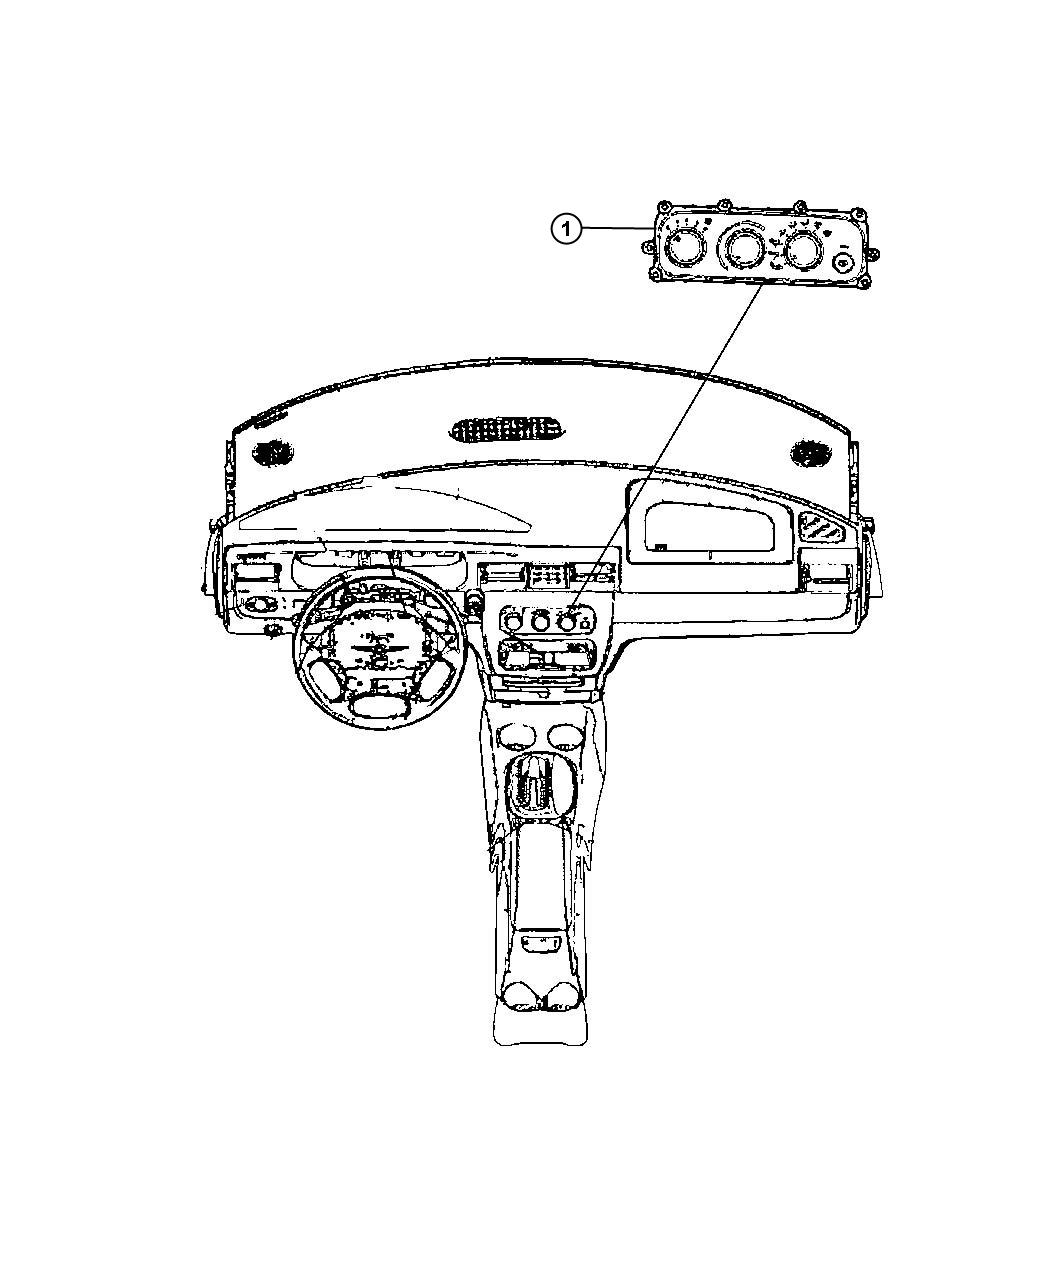 Dodge Avenger Control Used For A C And Heater Trim